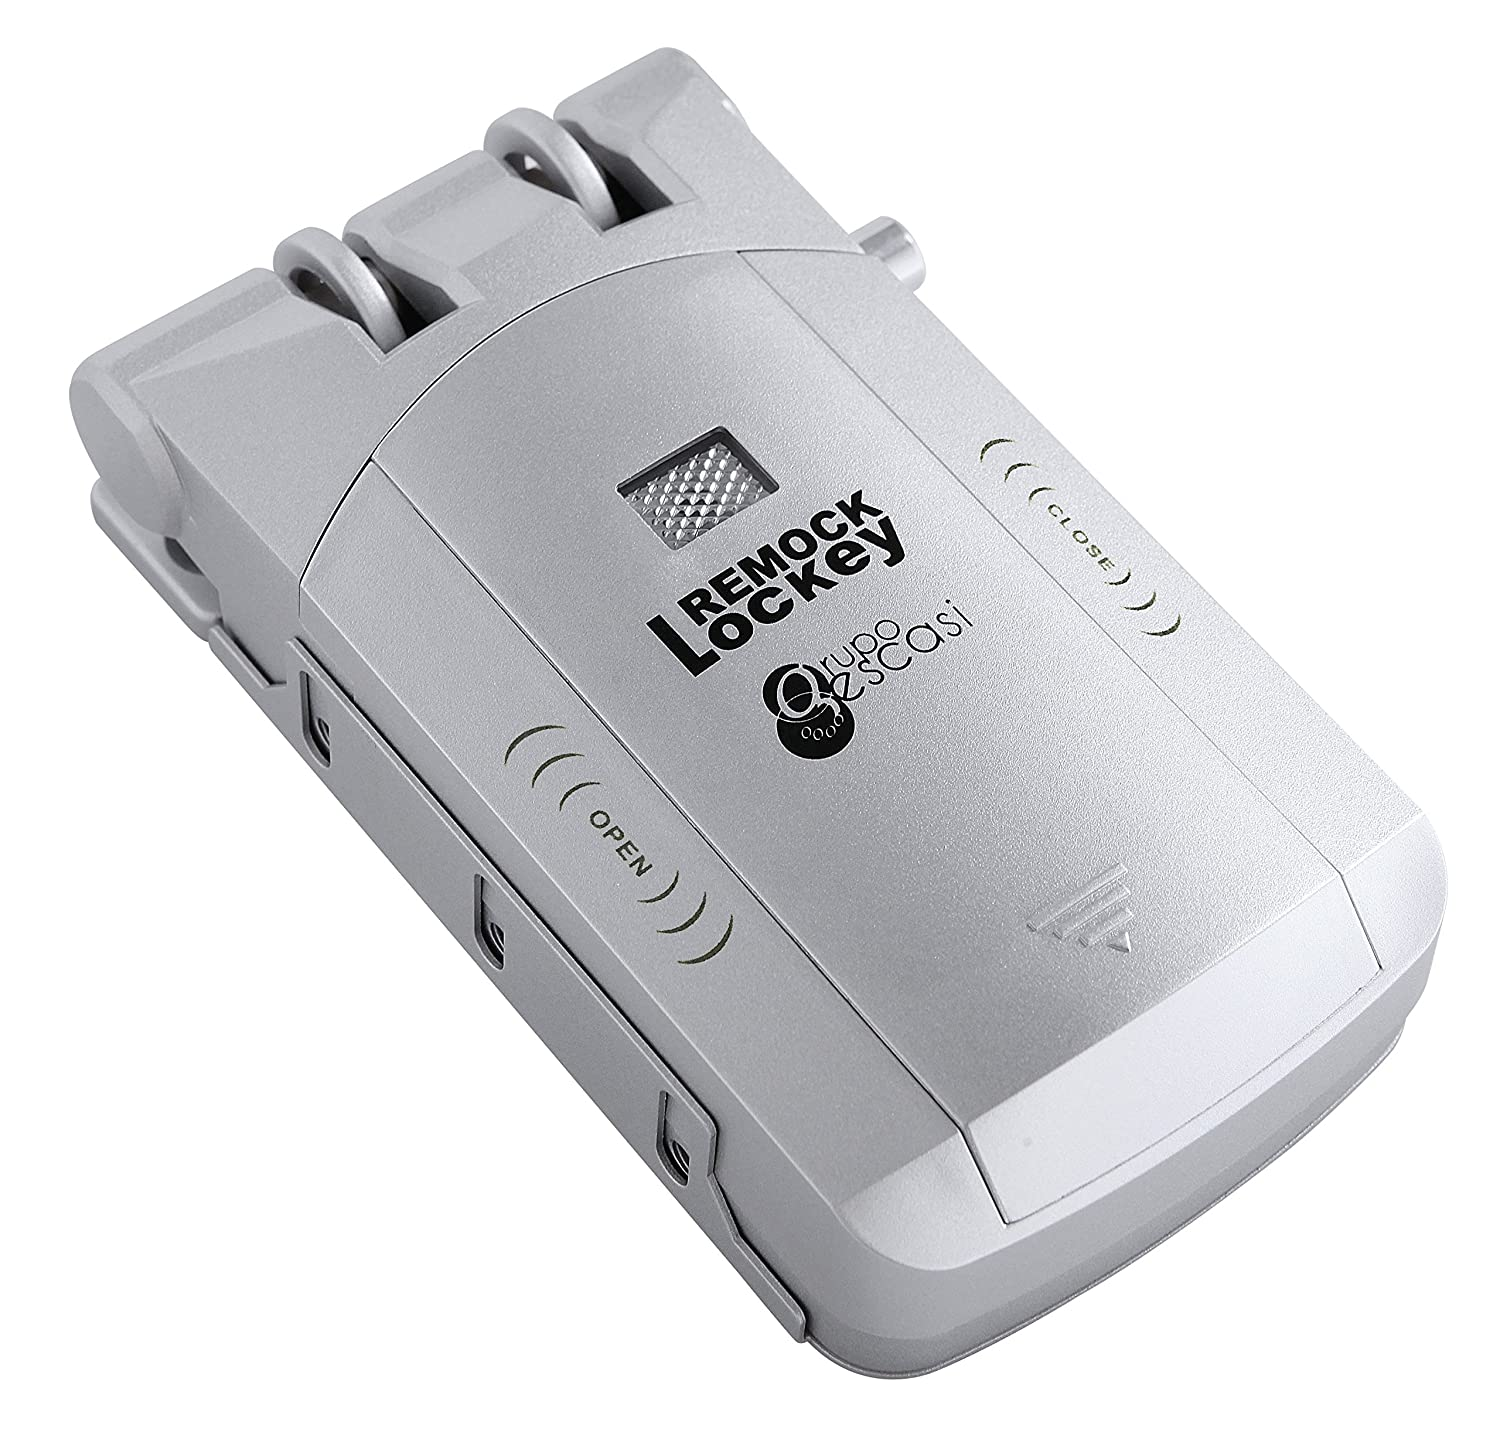 Remock Lockey RLK4S - Cerradura de seguridad invisible con 4 mandos (3 V) color